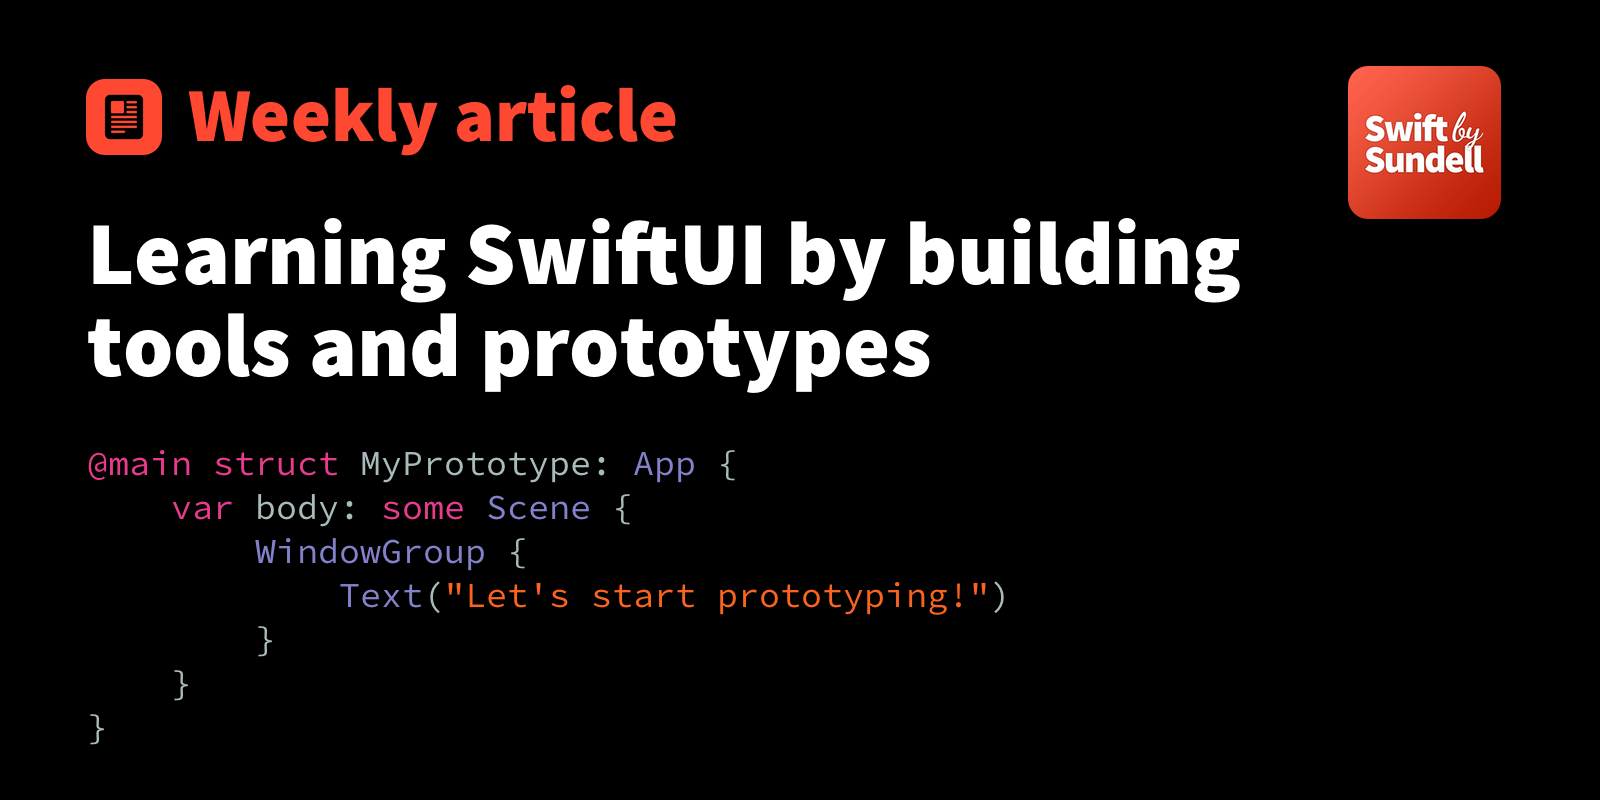 Learning SwiftUI by building tools and prototypes